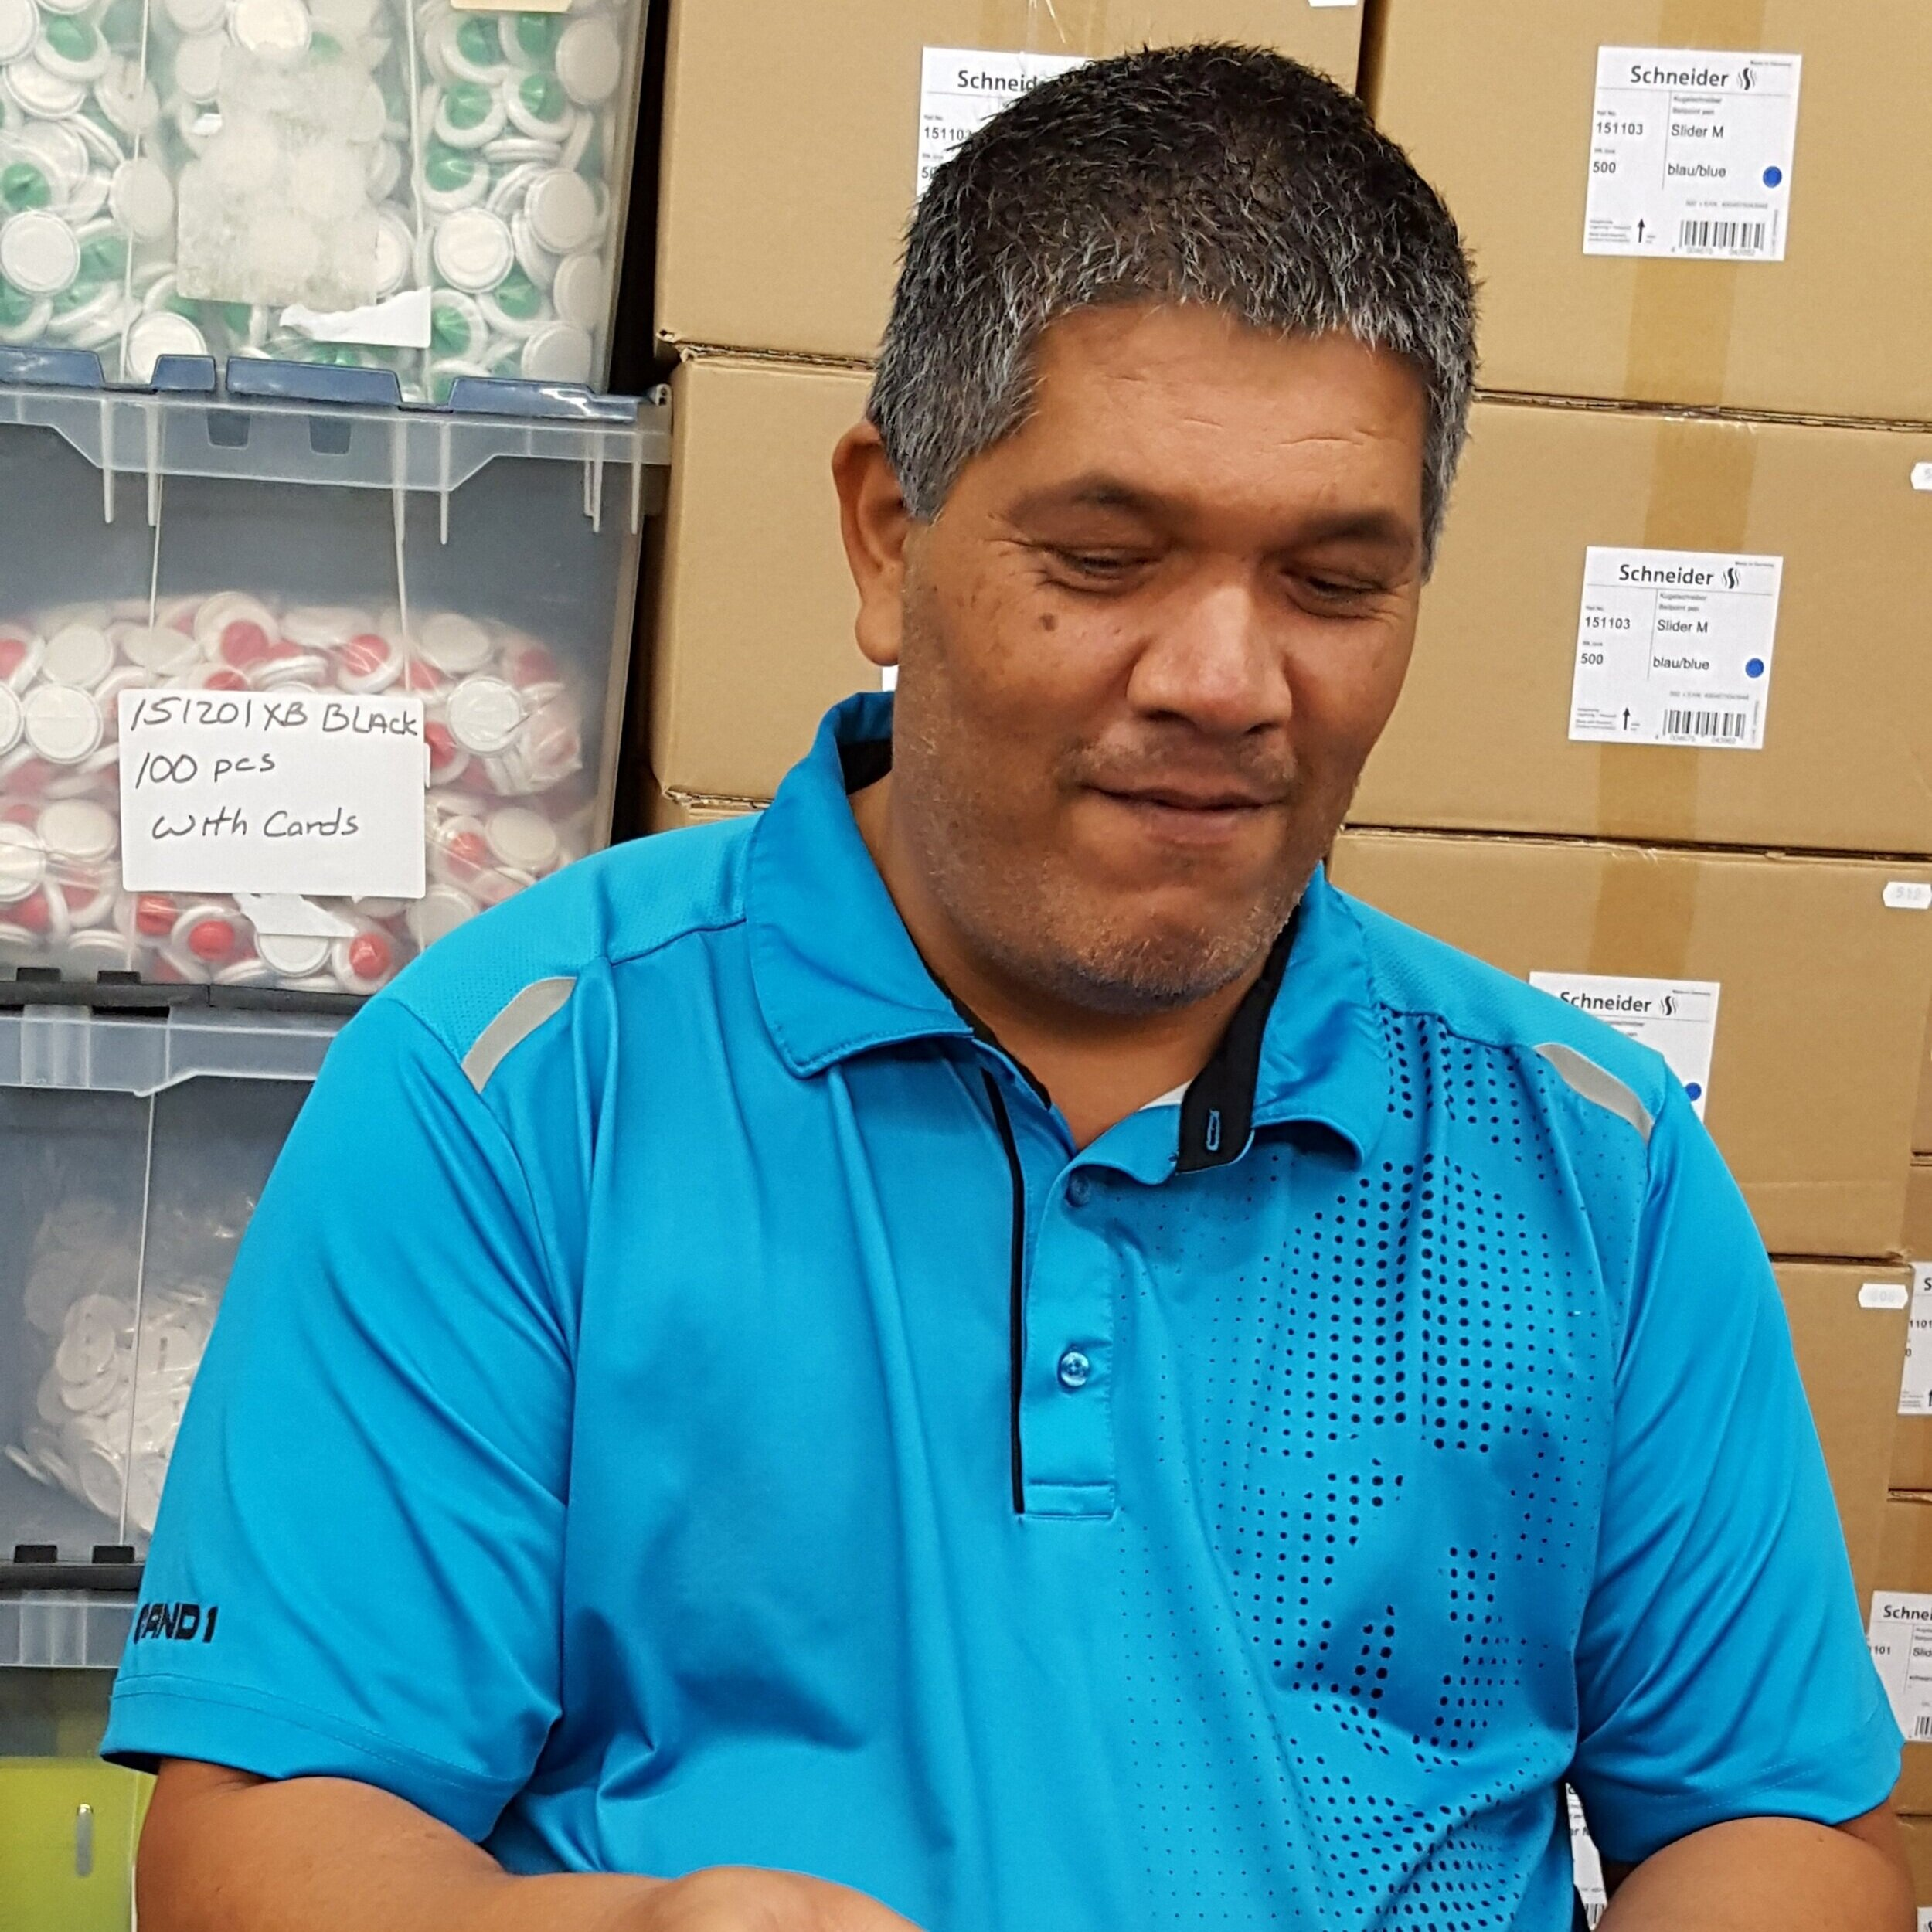 Victor has advanced within the company and is the head of Shipping & Receiving.